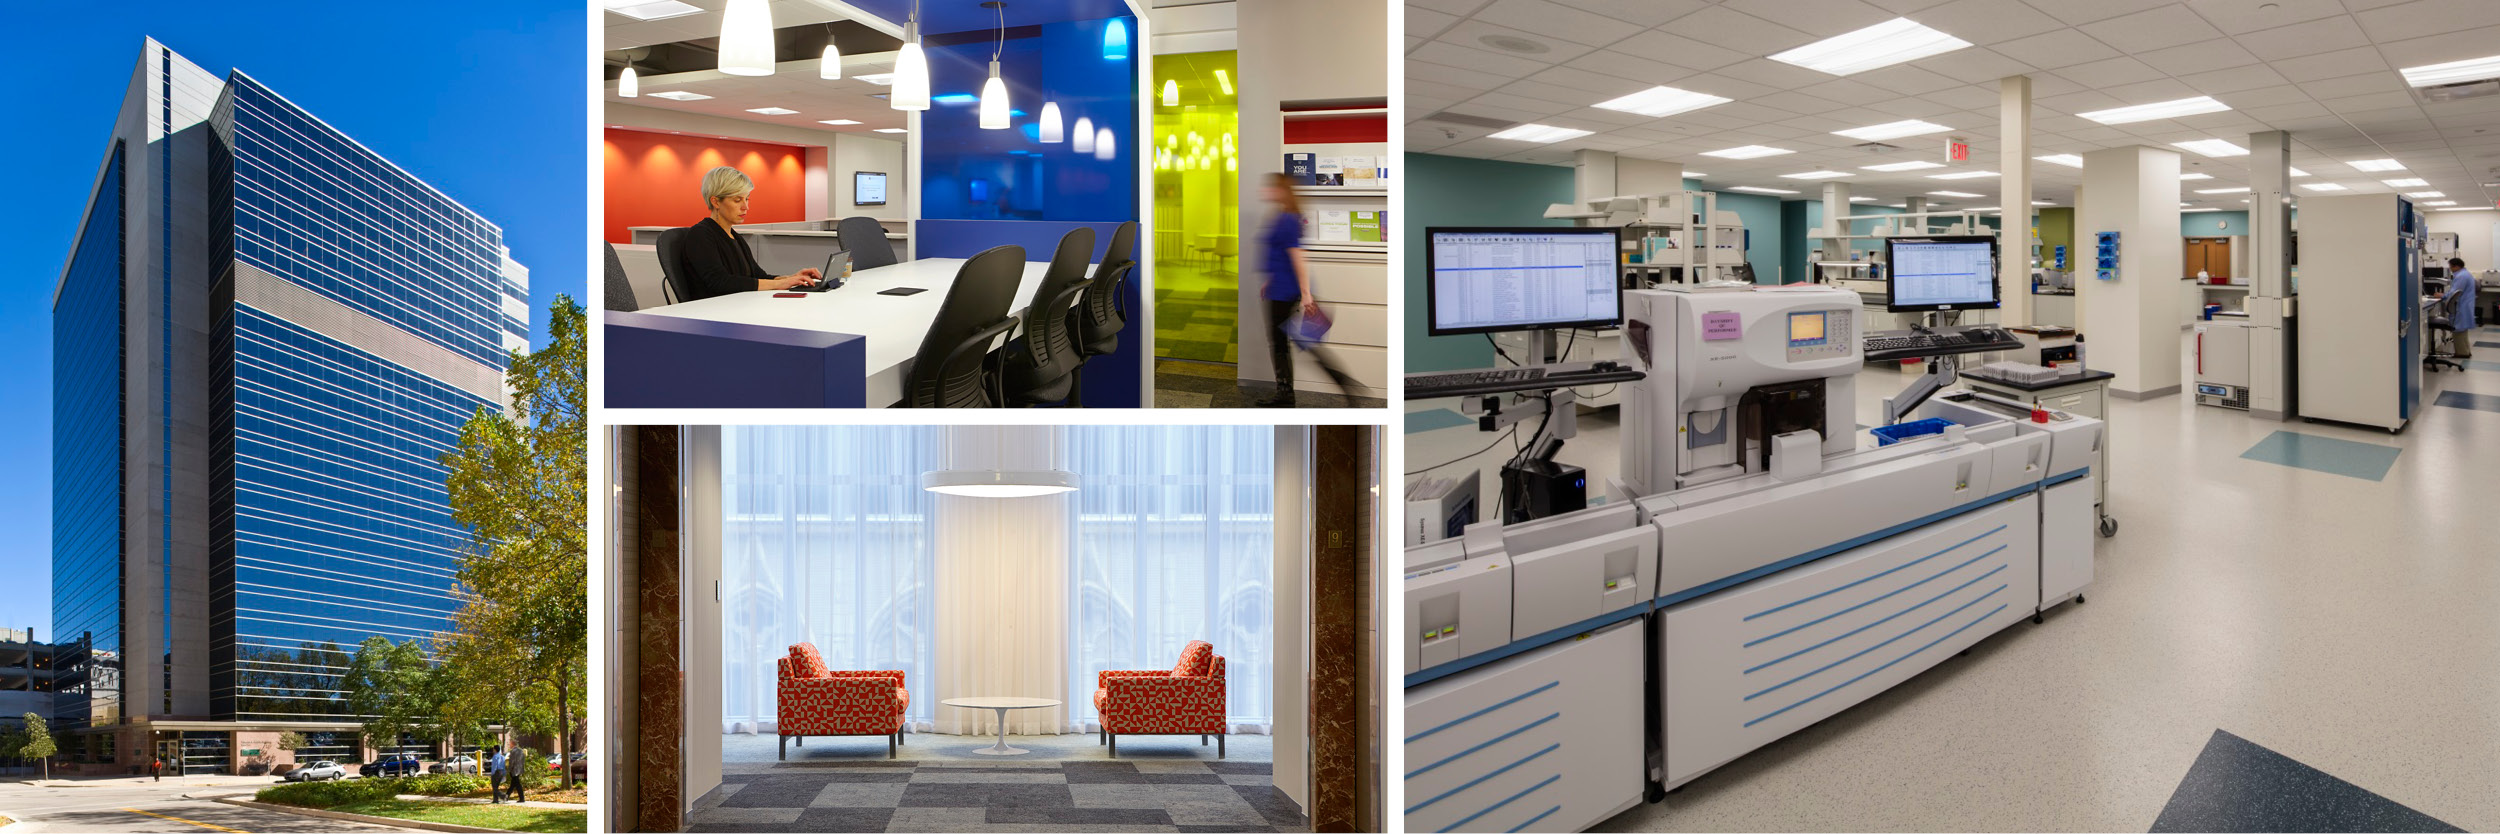 Mayo Clinic Collage